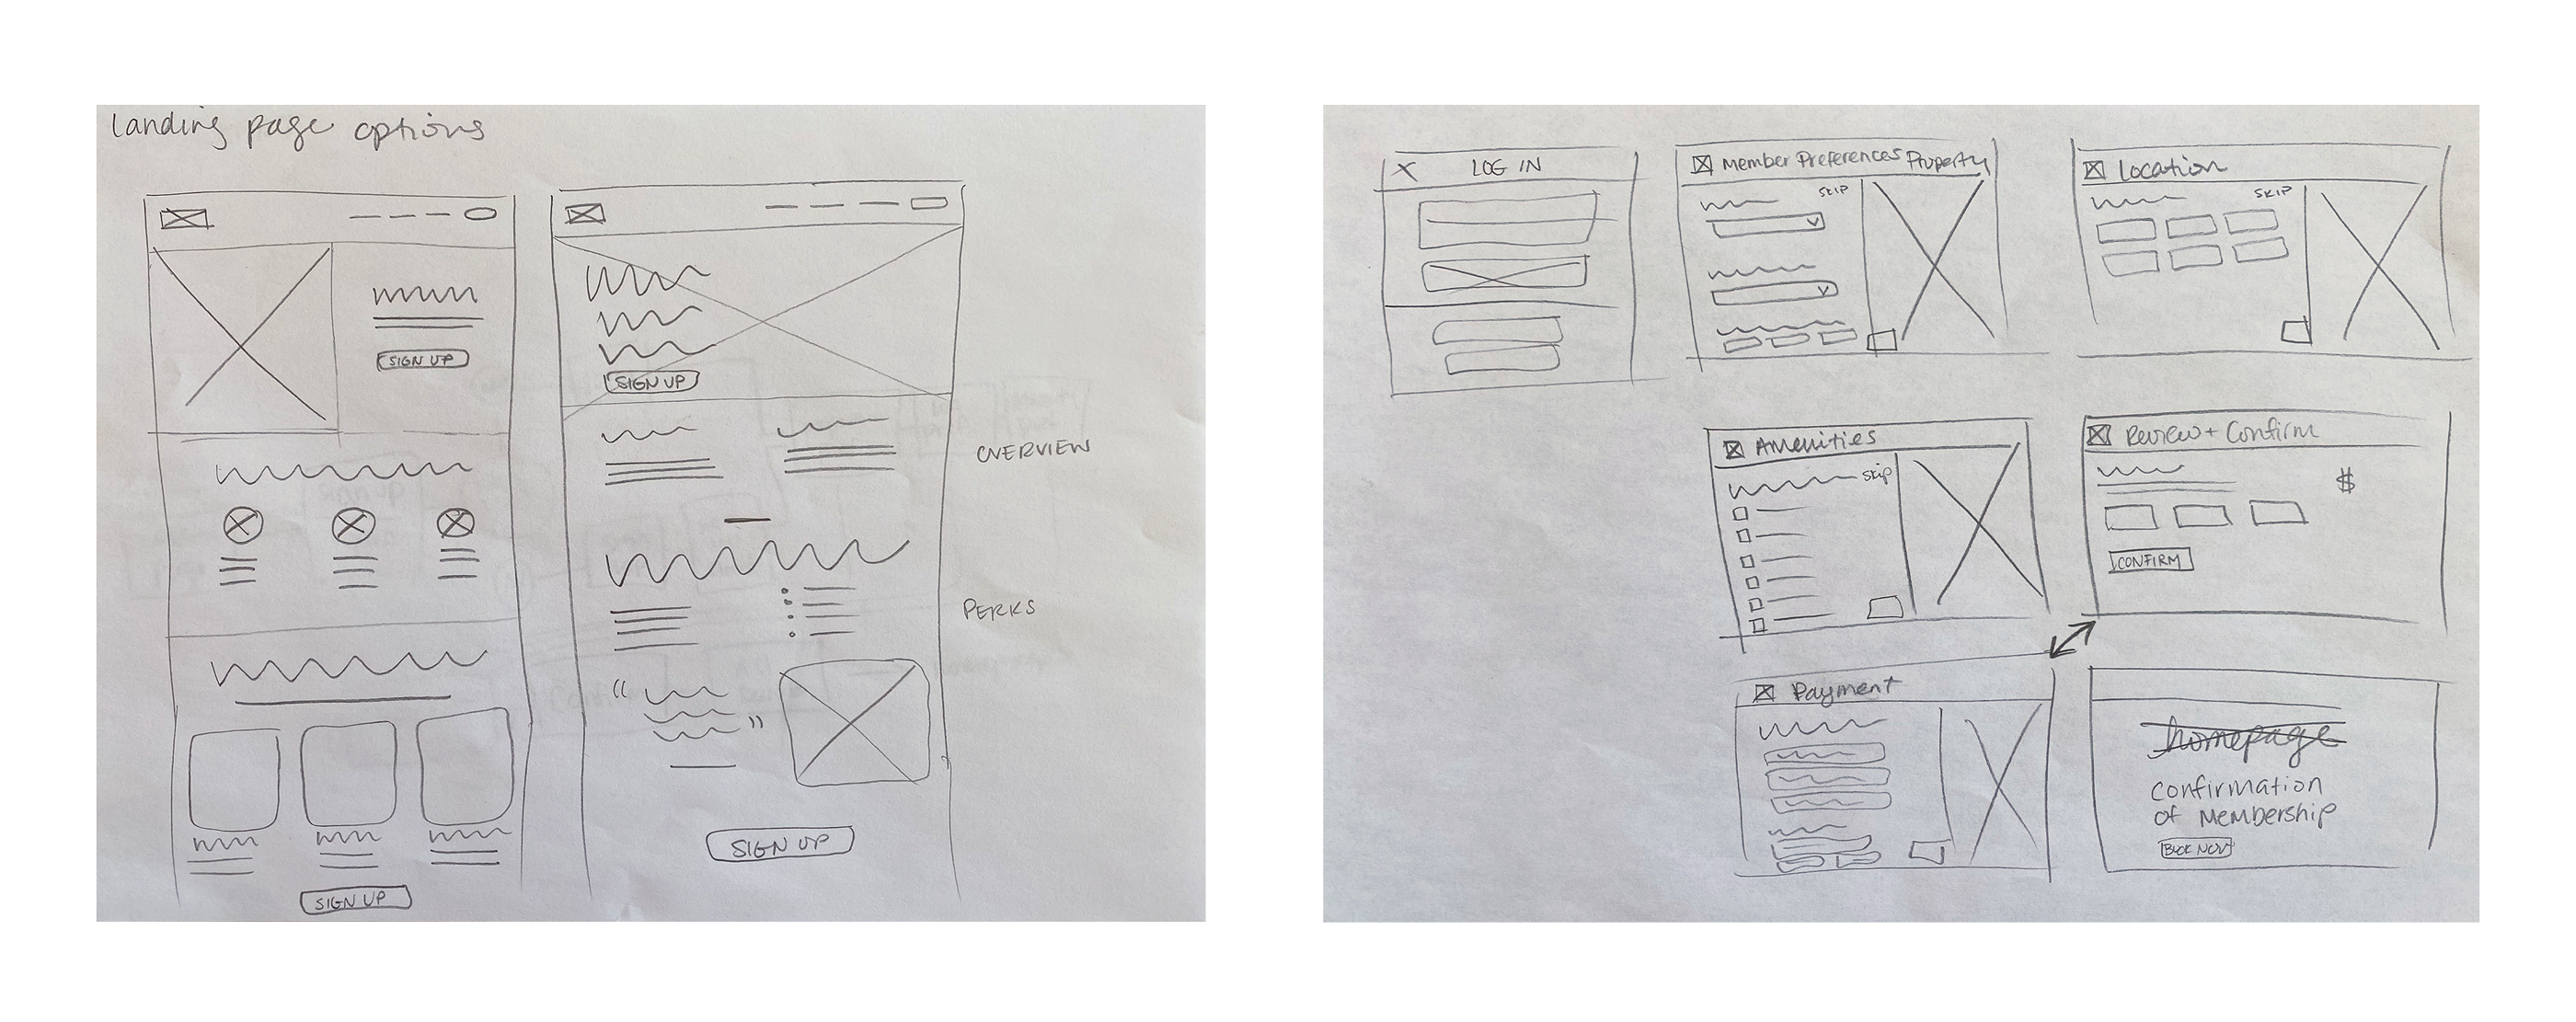 Sketched wireframes of landing pages and preference screens